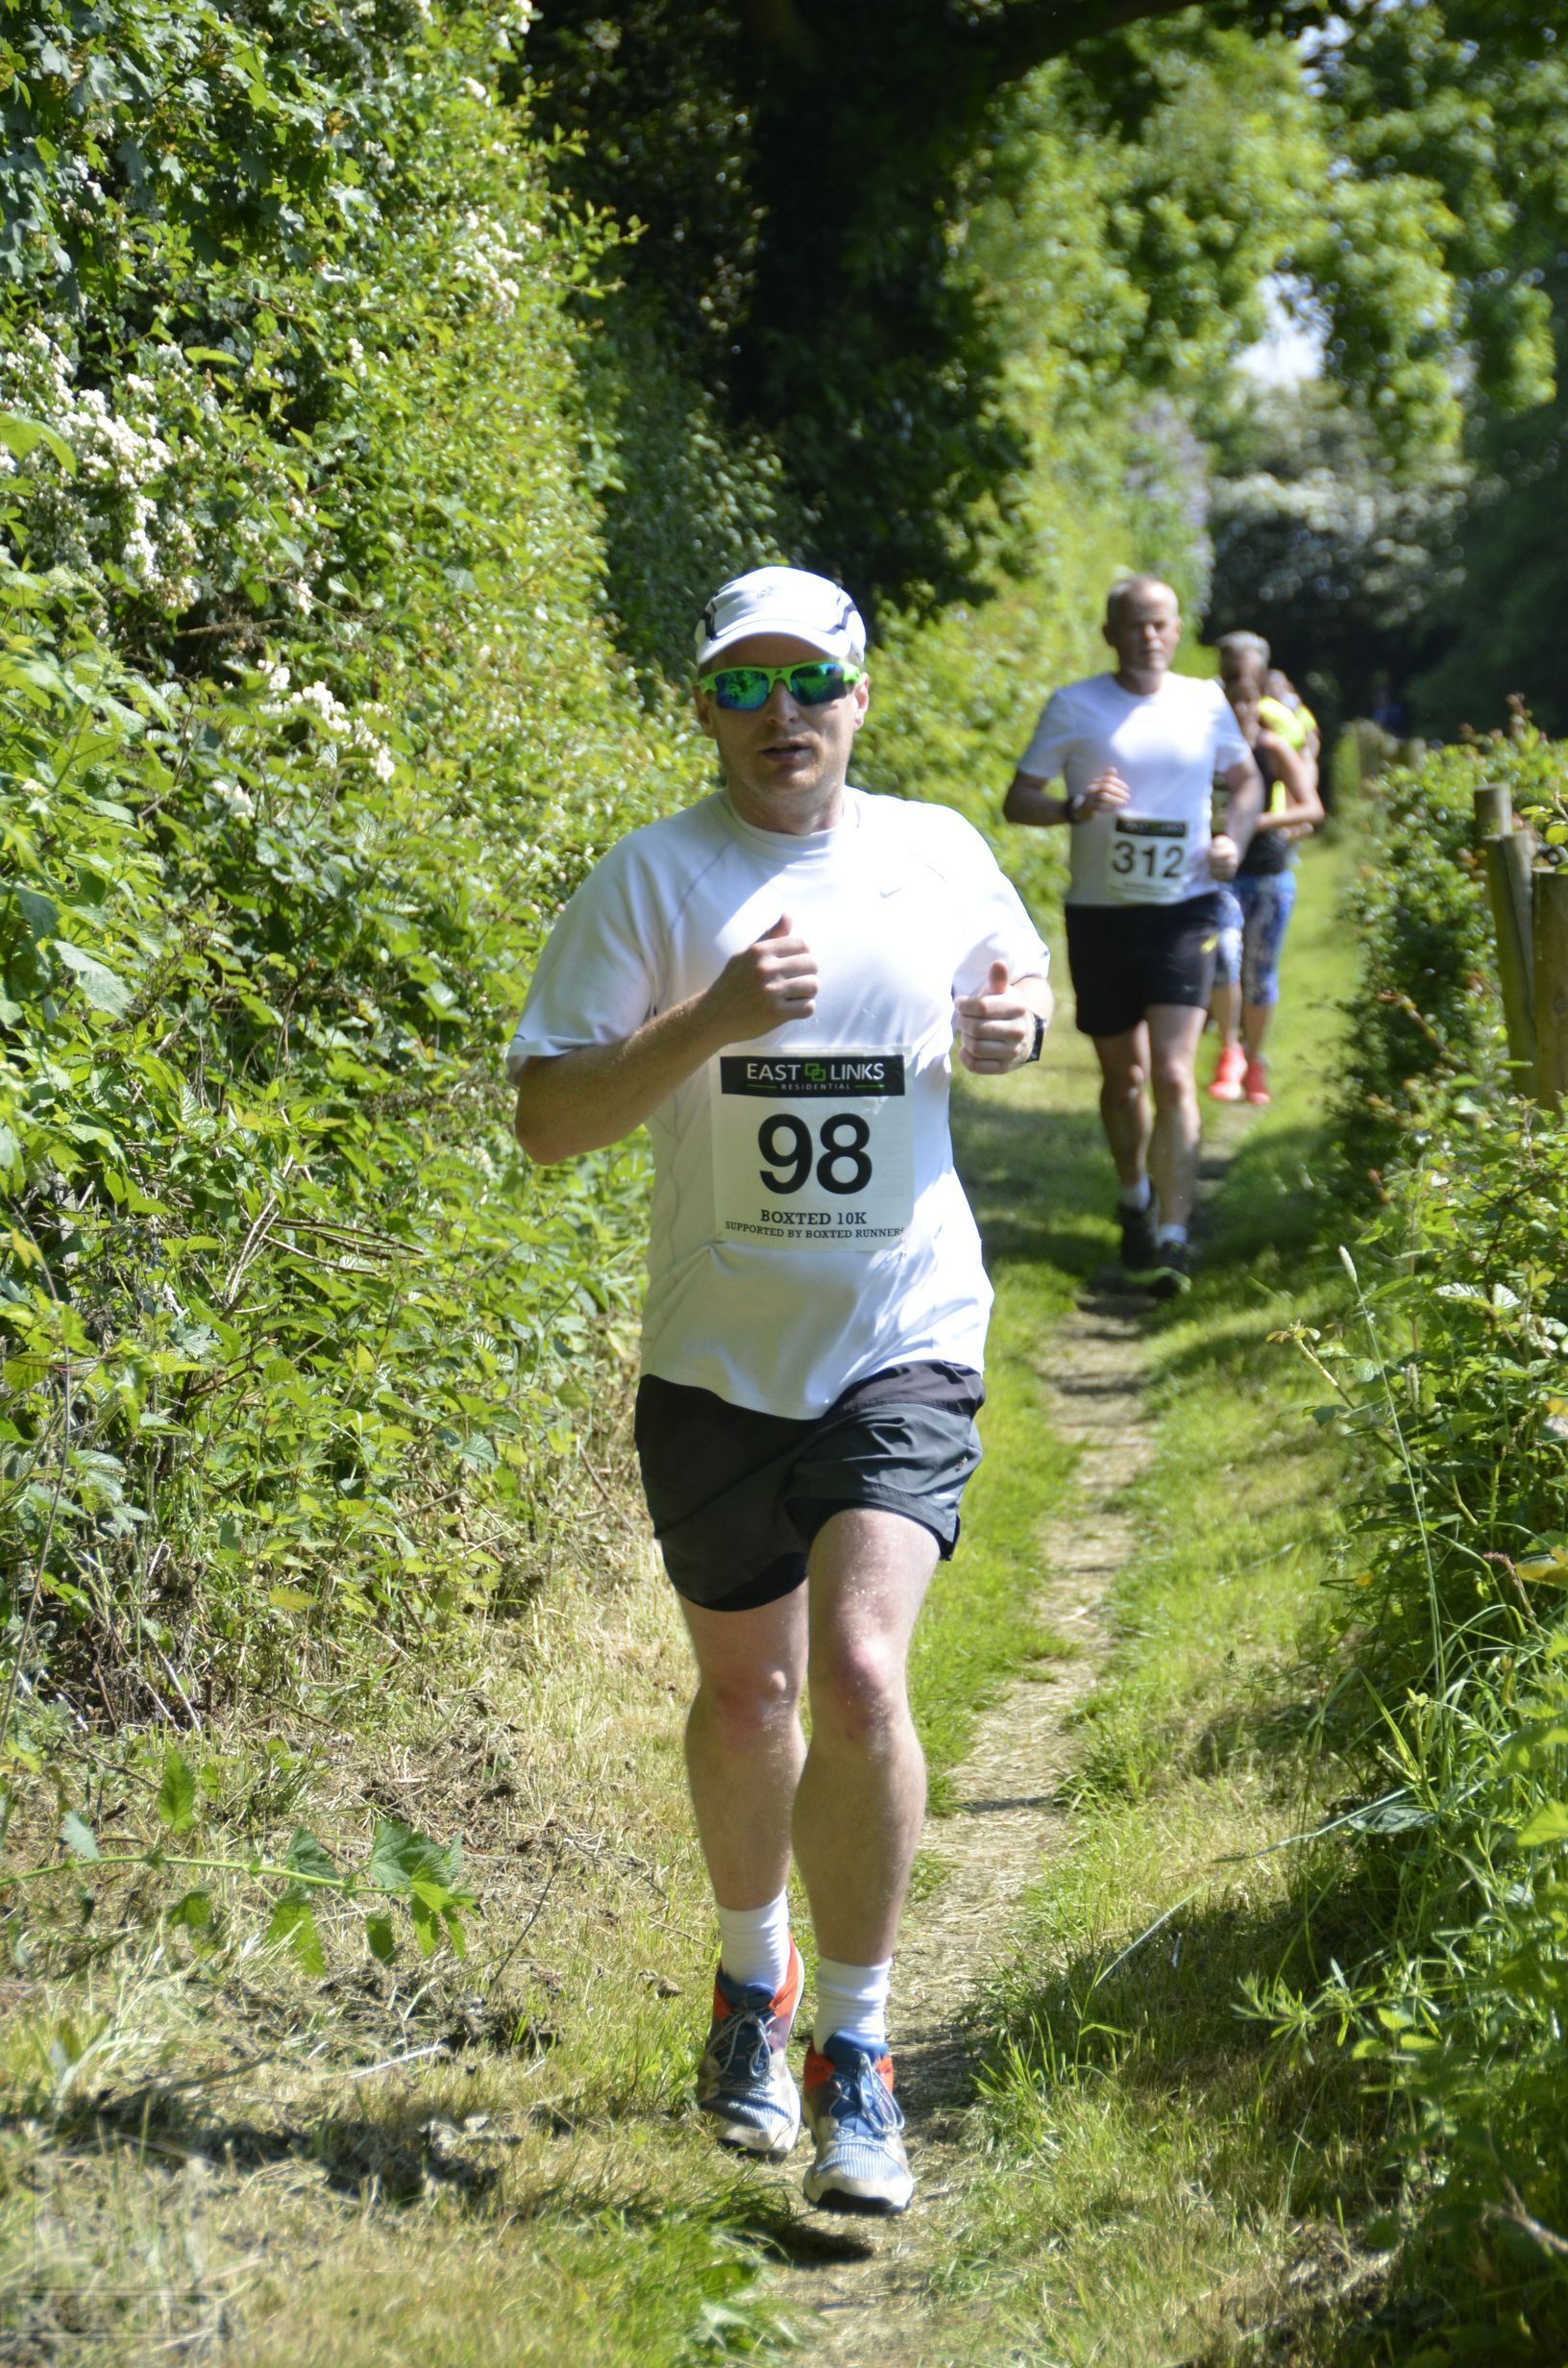 Boxted10k-00254